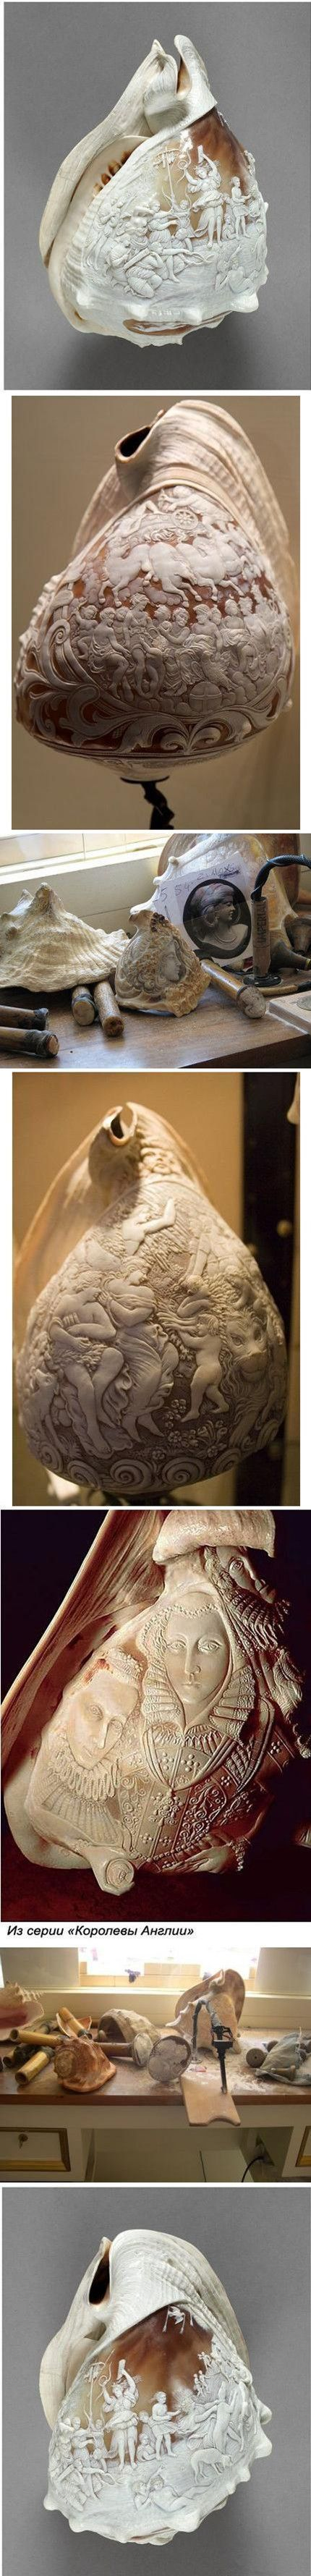 carving on shells..